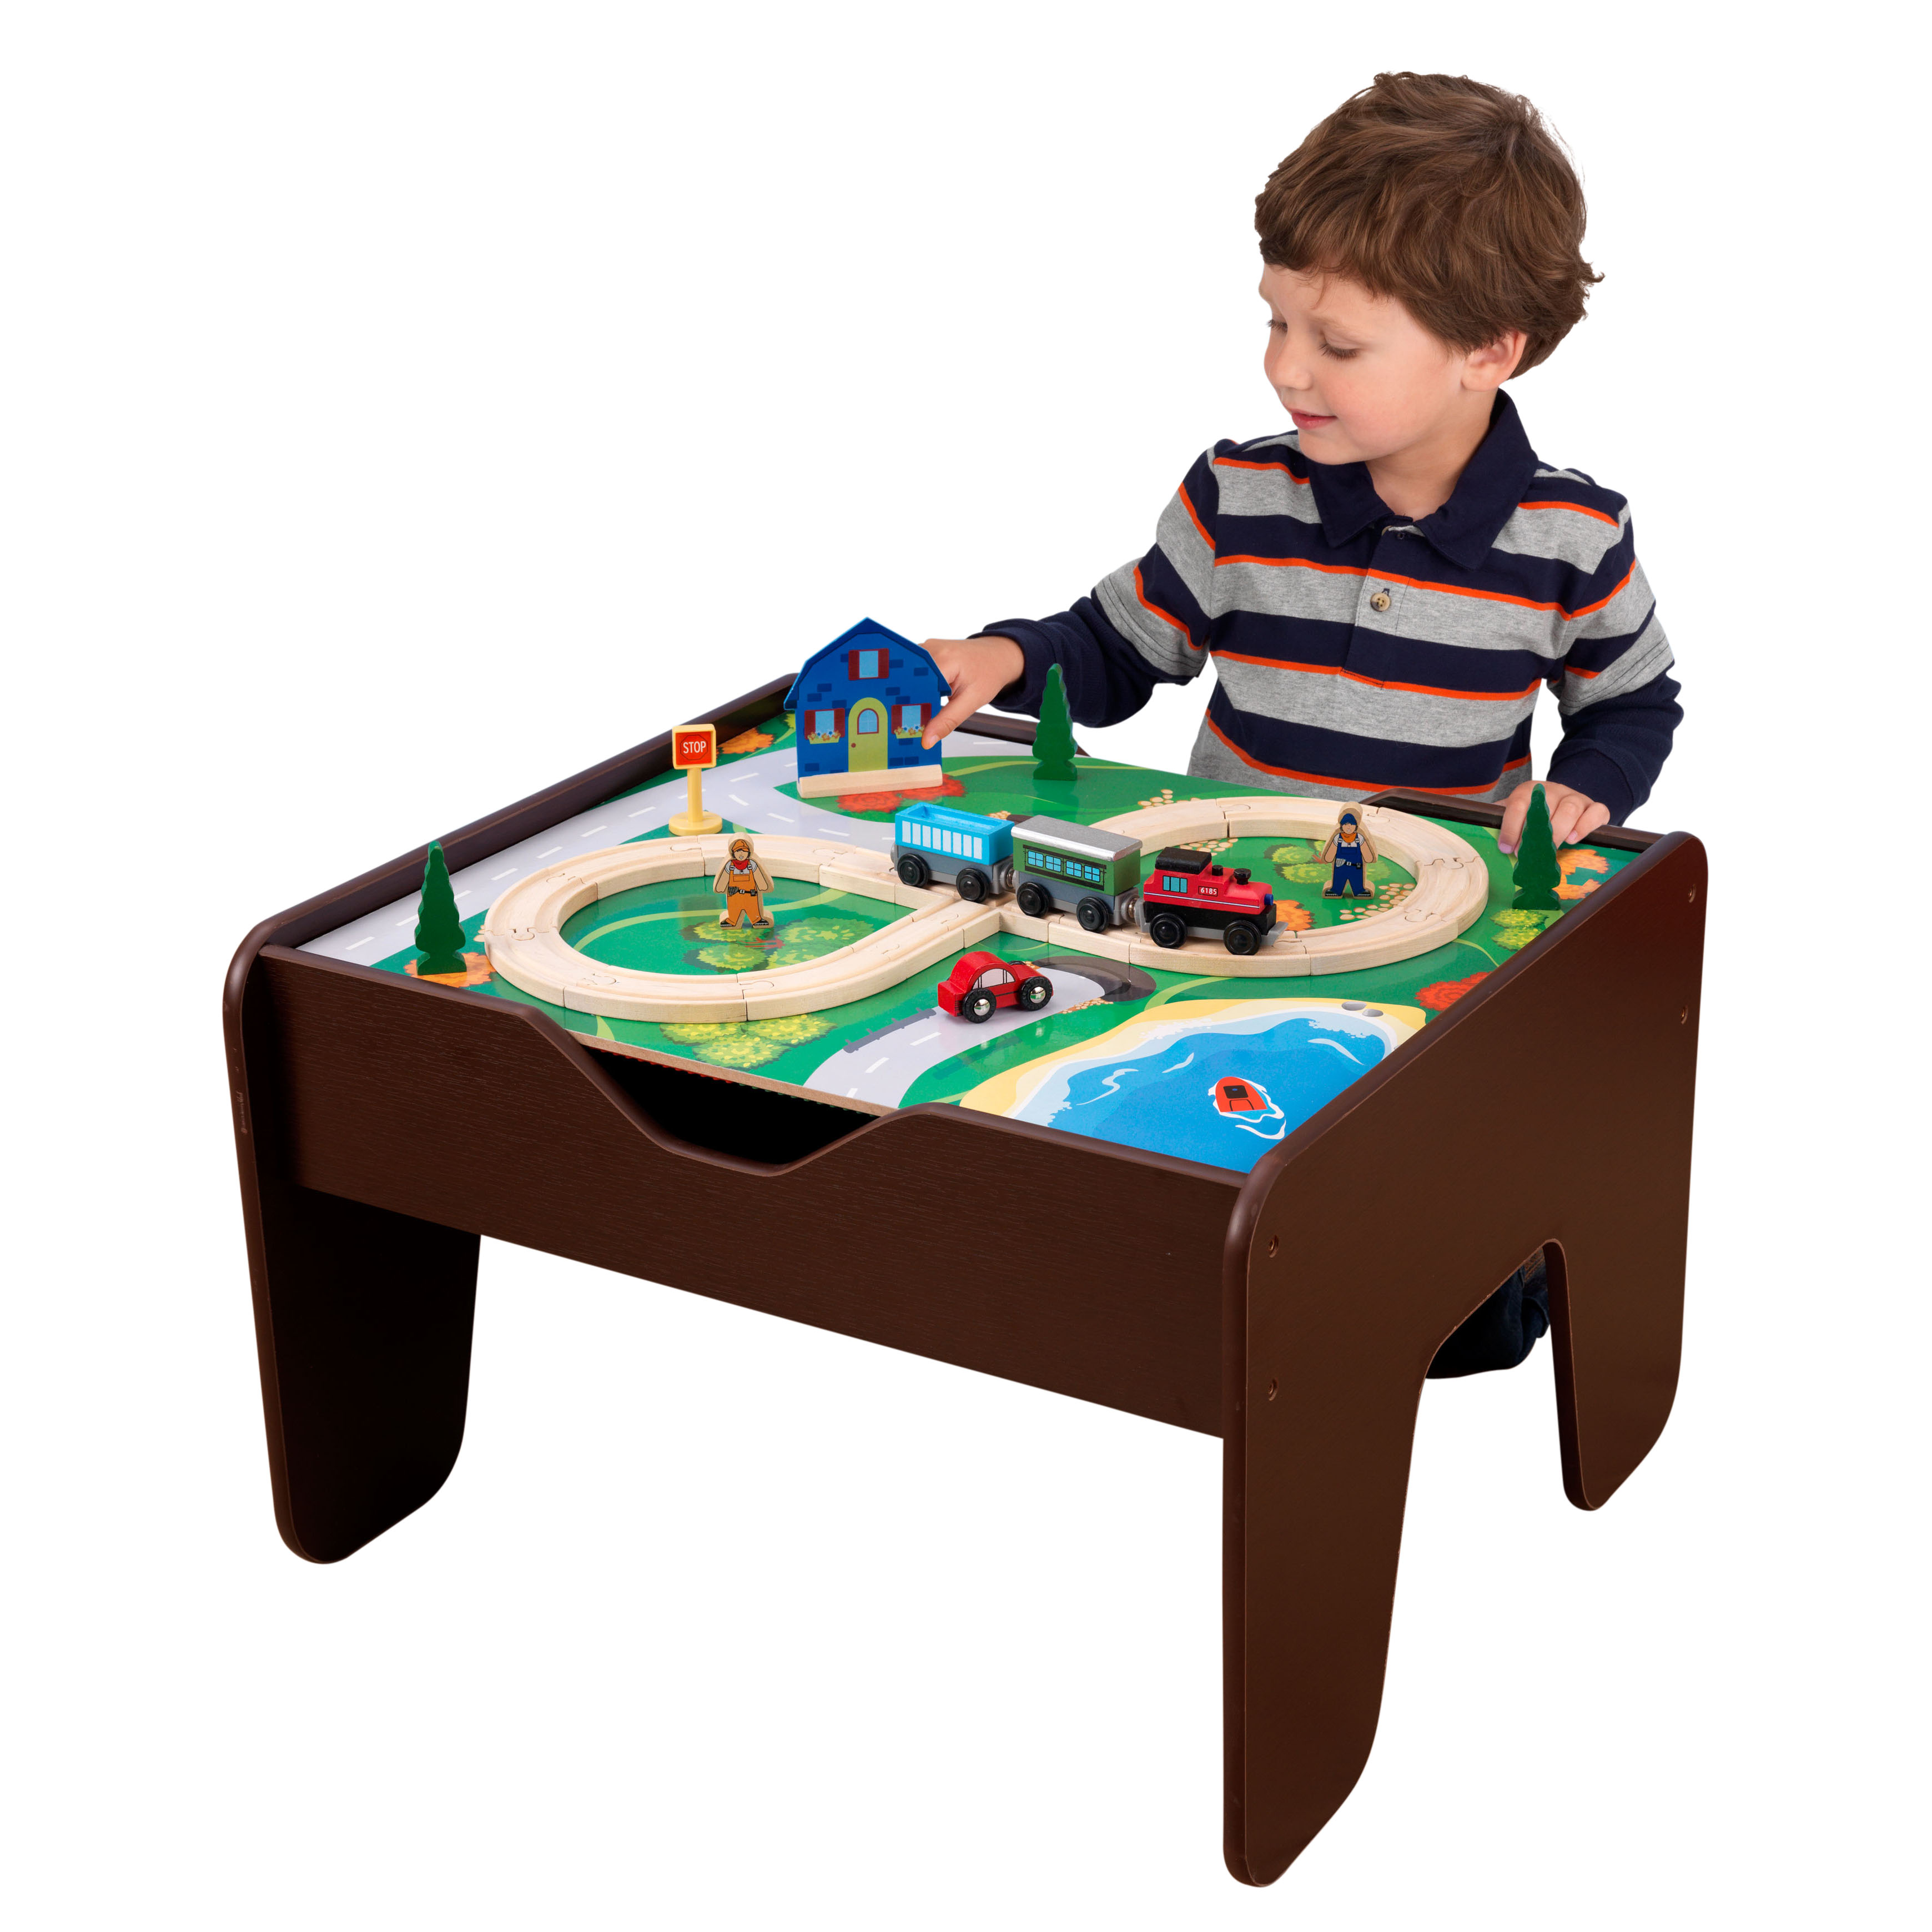 KidKraft 2-in-1 Activity Table With Board - Espresso with 230 accessories included